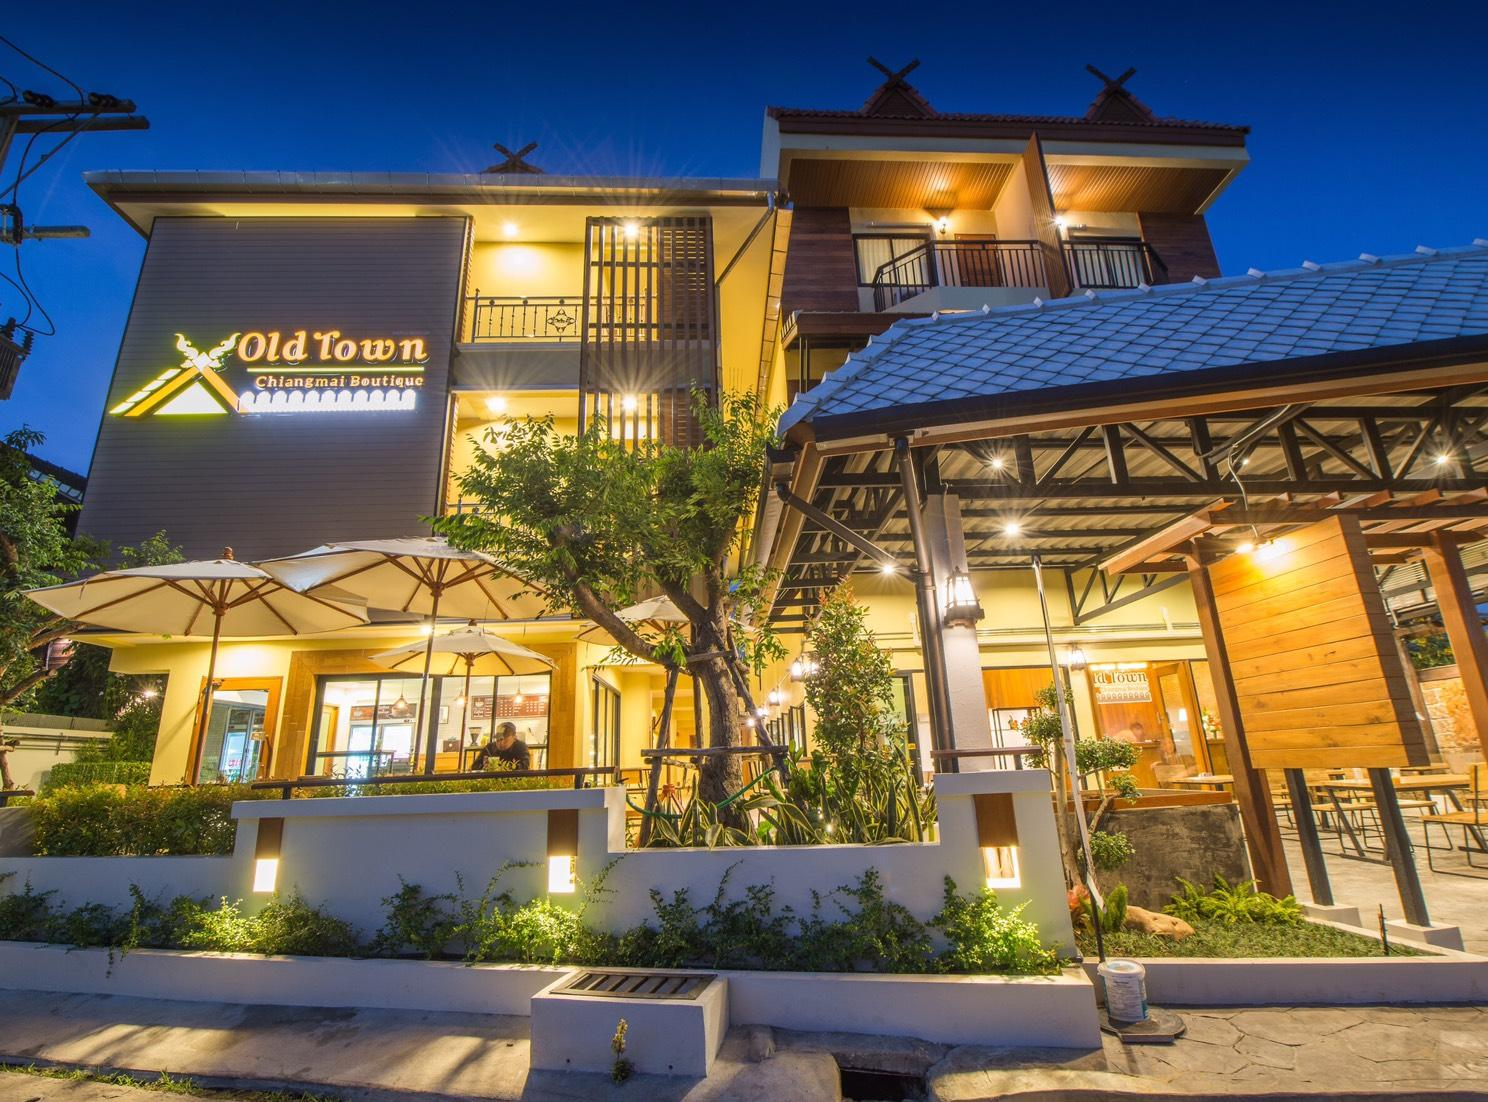 Old Town Chiangmai Boutique